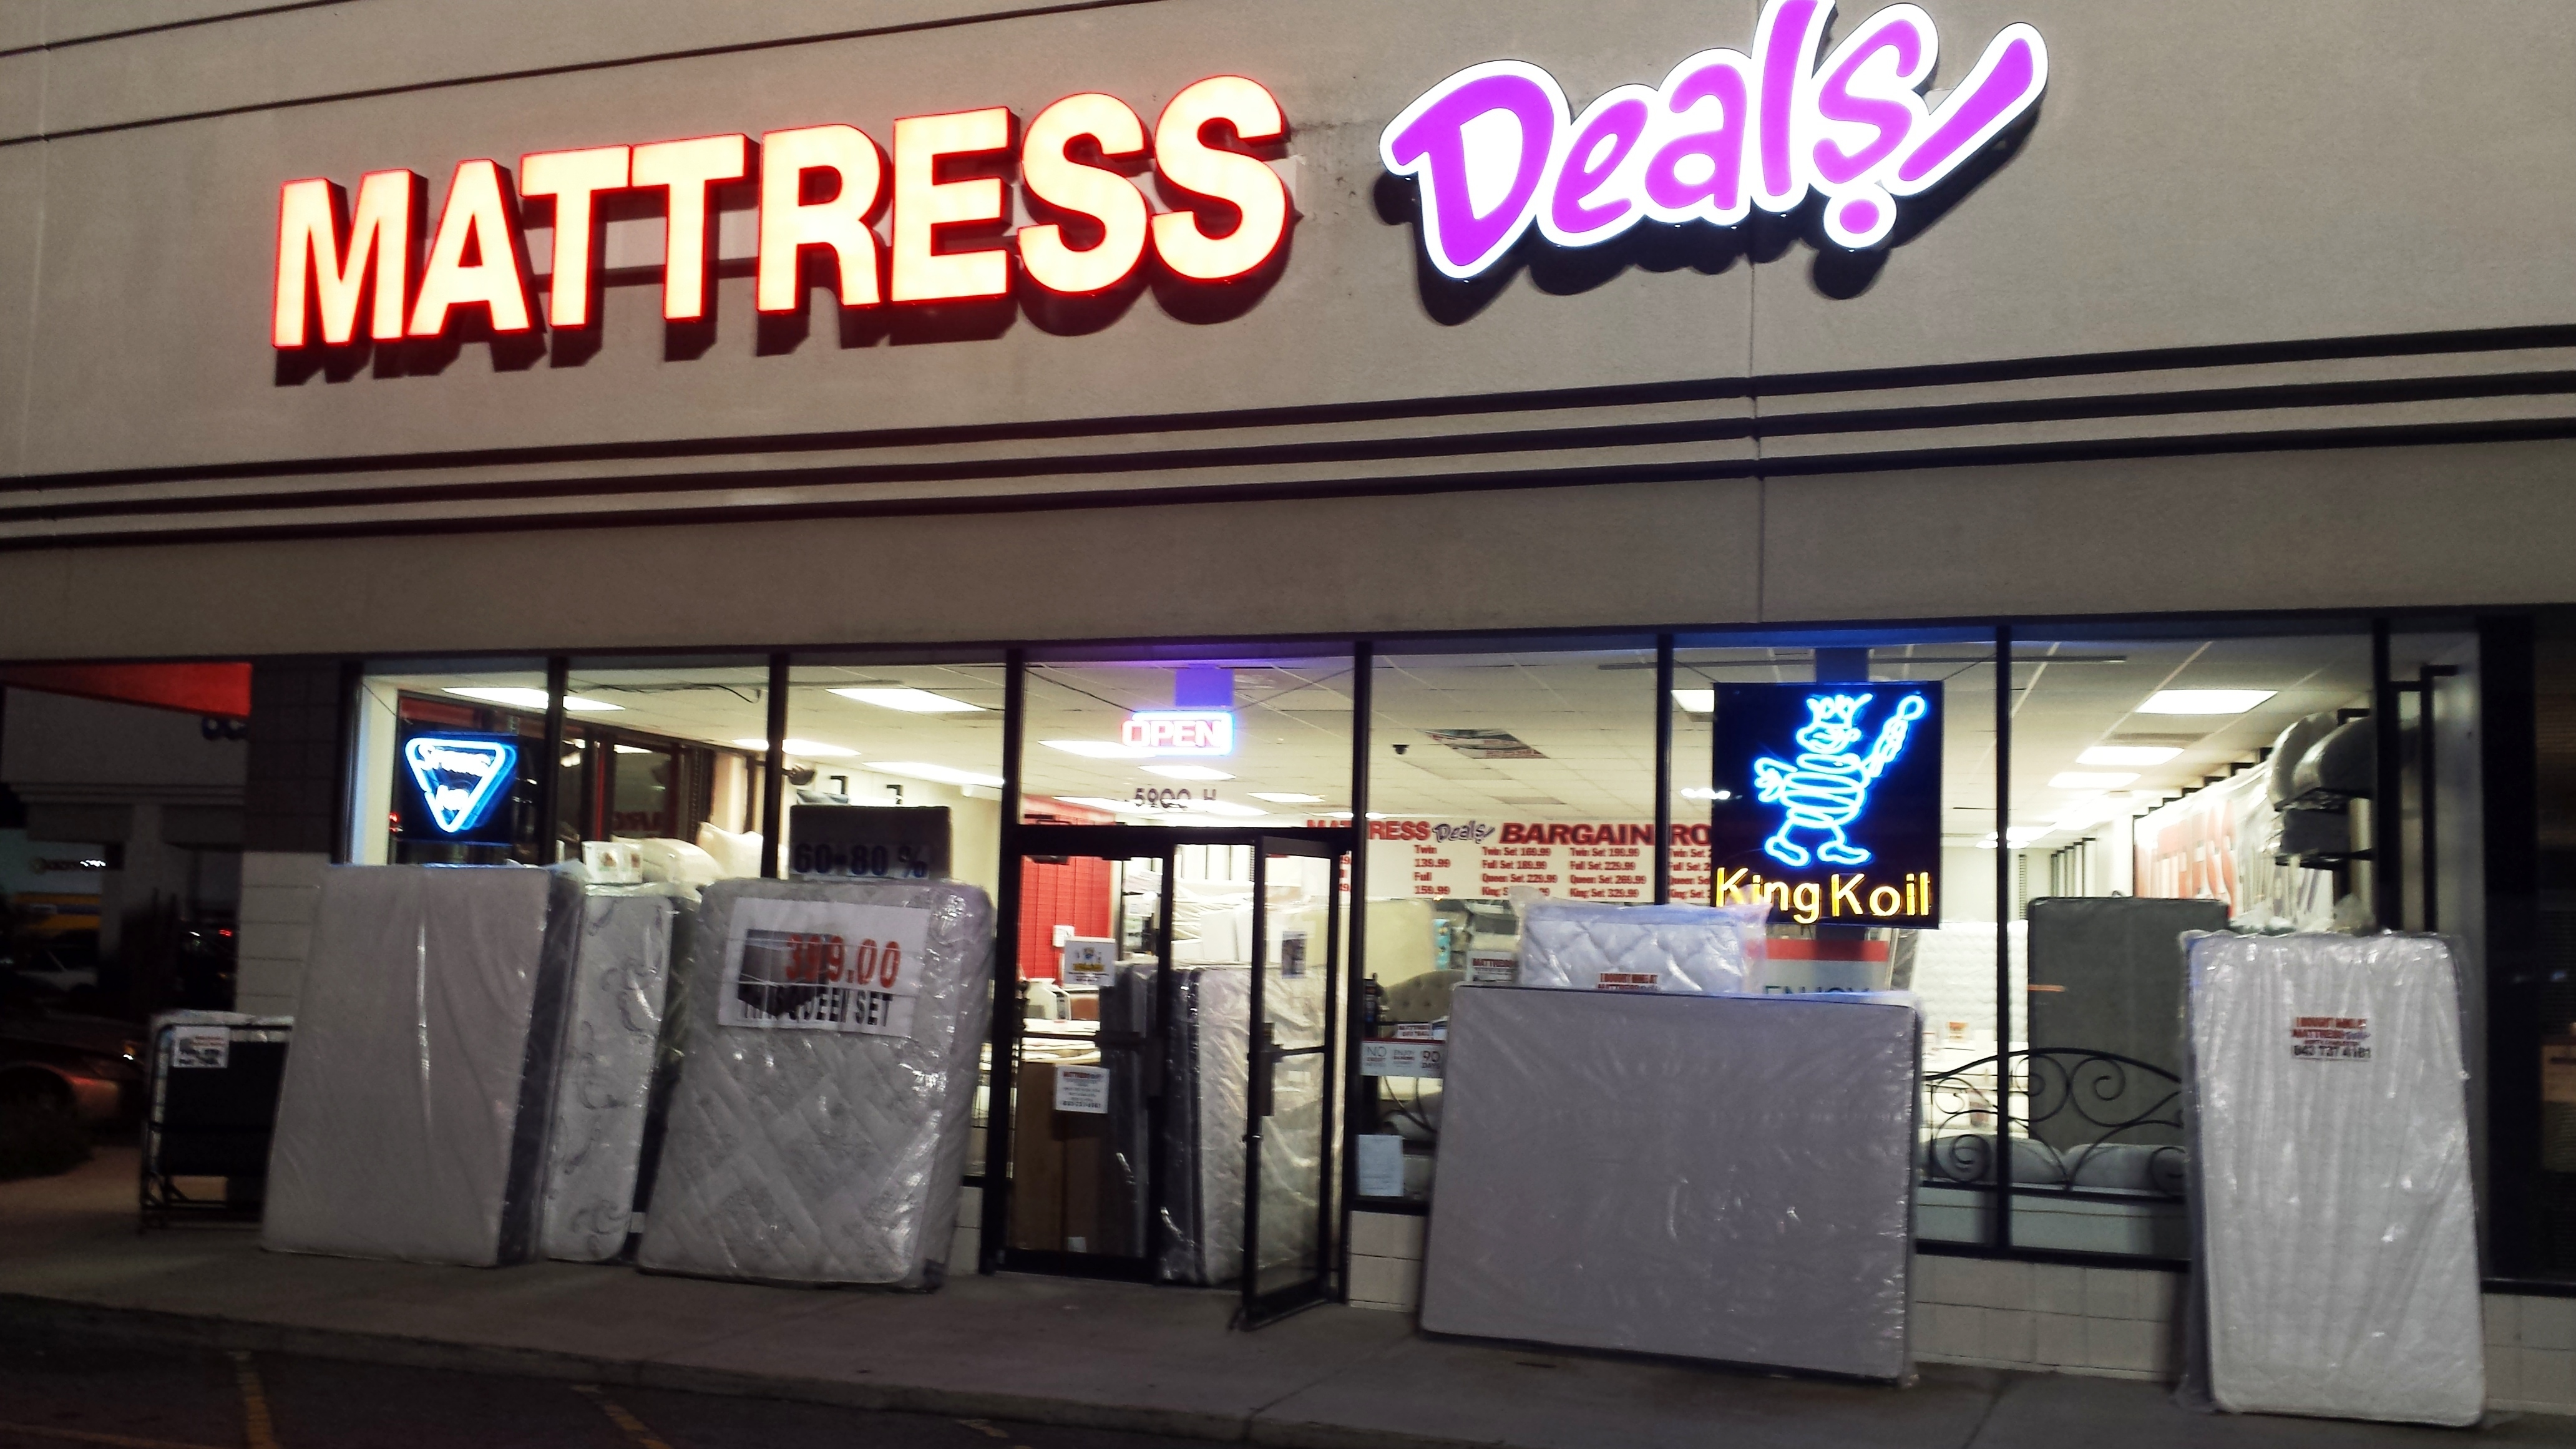 Mattress deals in north charleston sc 29406 for Deals furniture and mattress outlet